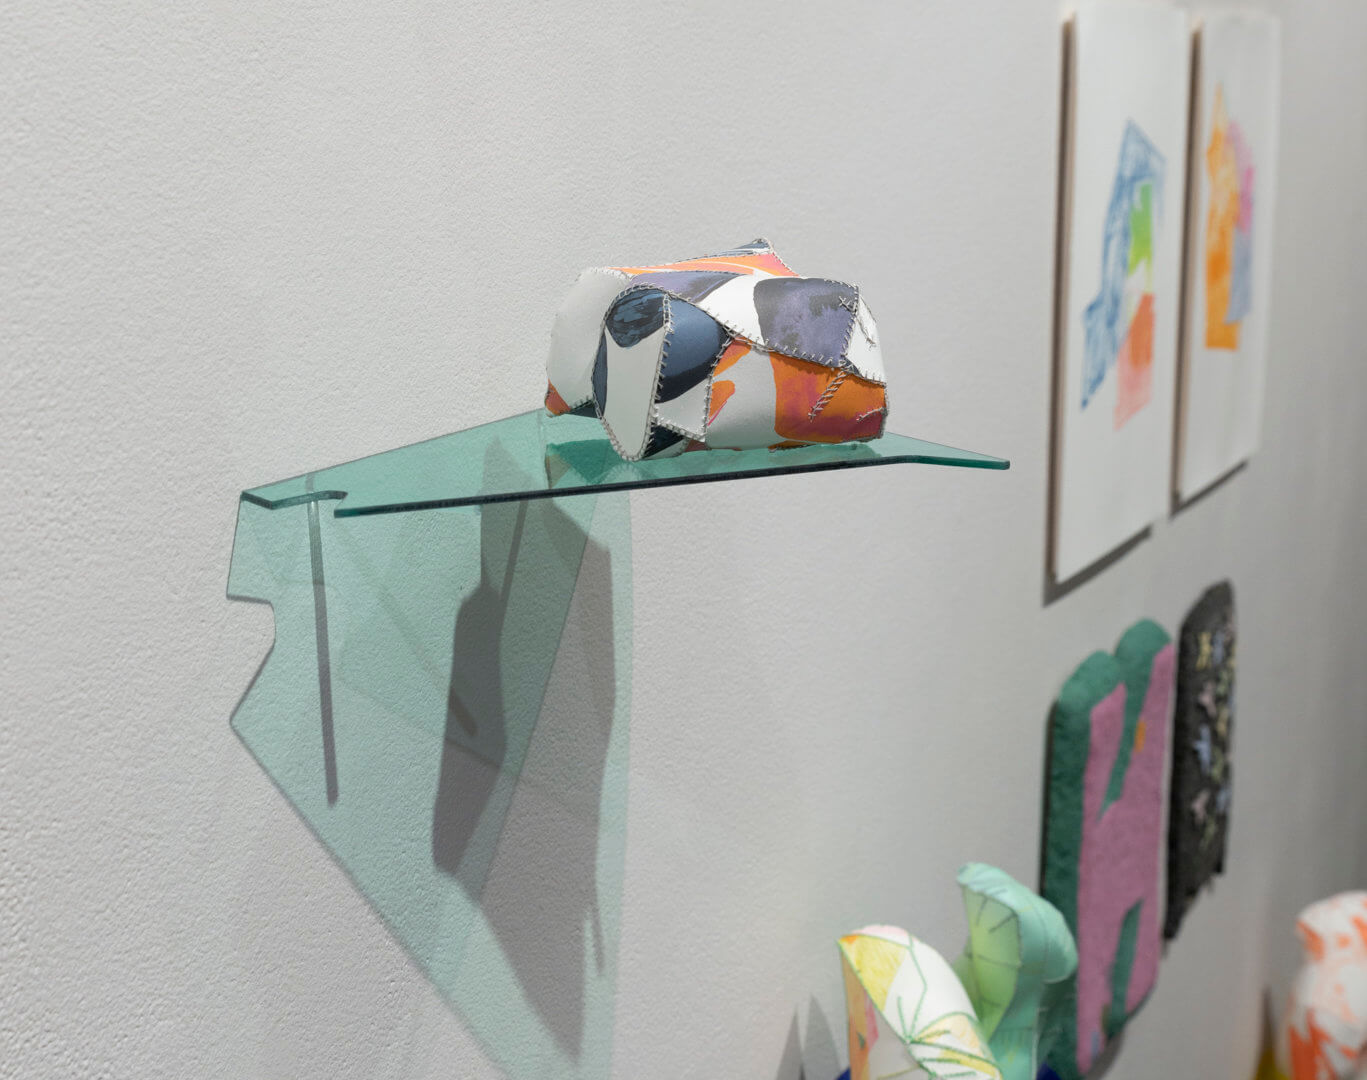 Installation view of Playground Chitchat. Detail of works by Neah Kelly and Bram Keast. Image credit: Sarah Fuller.